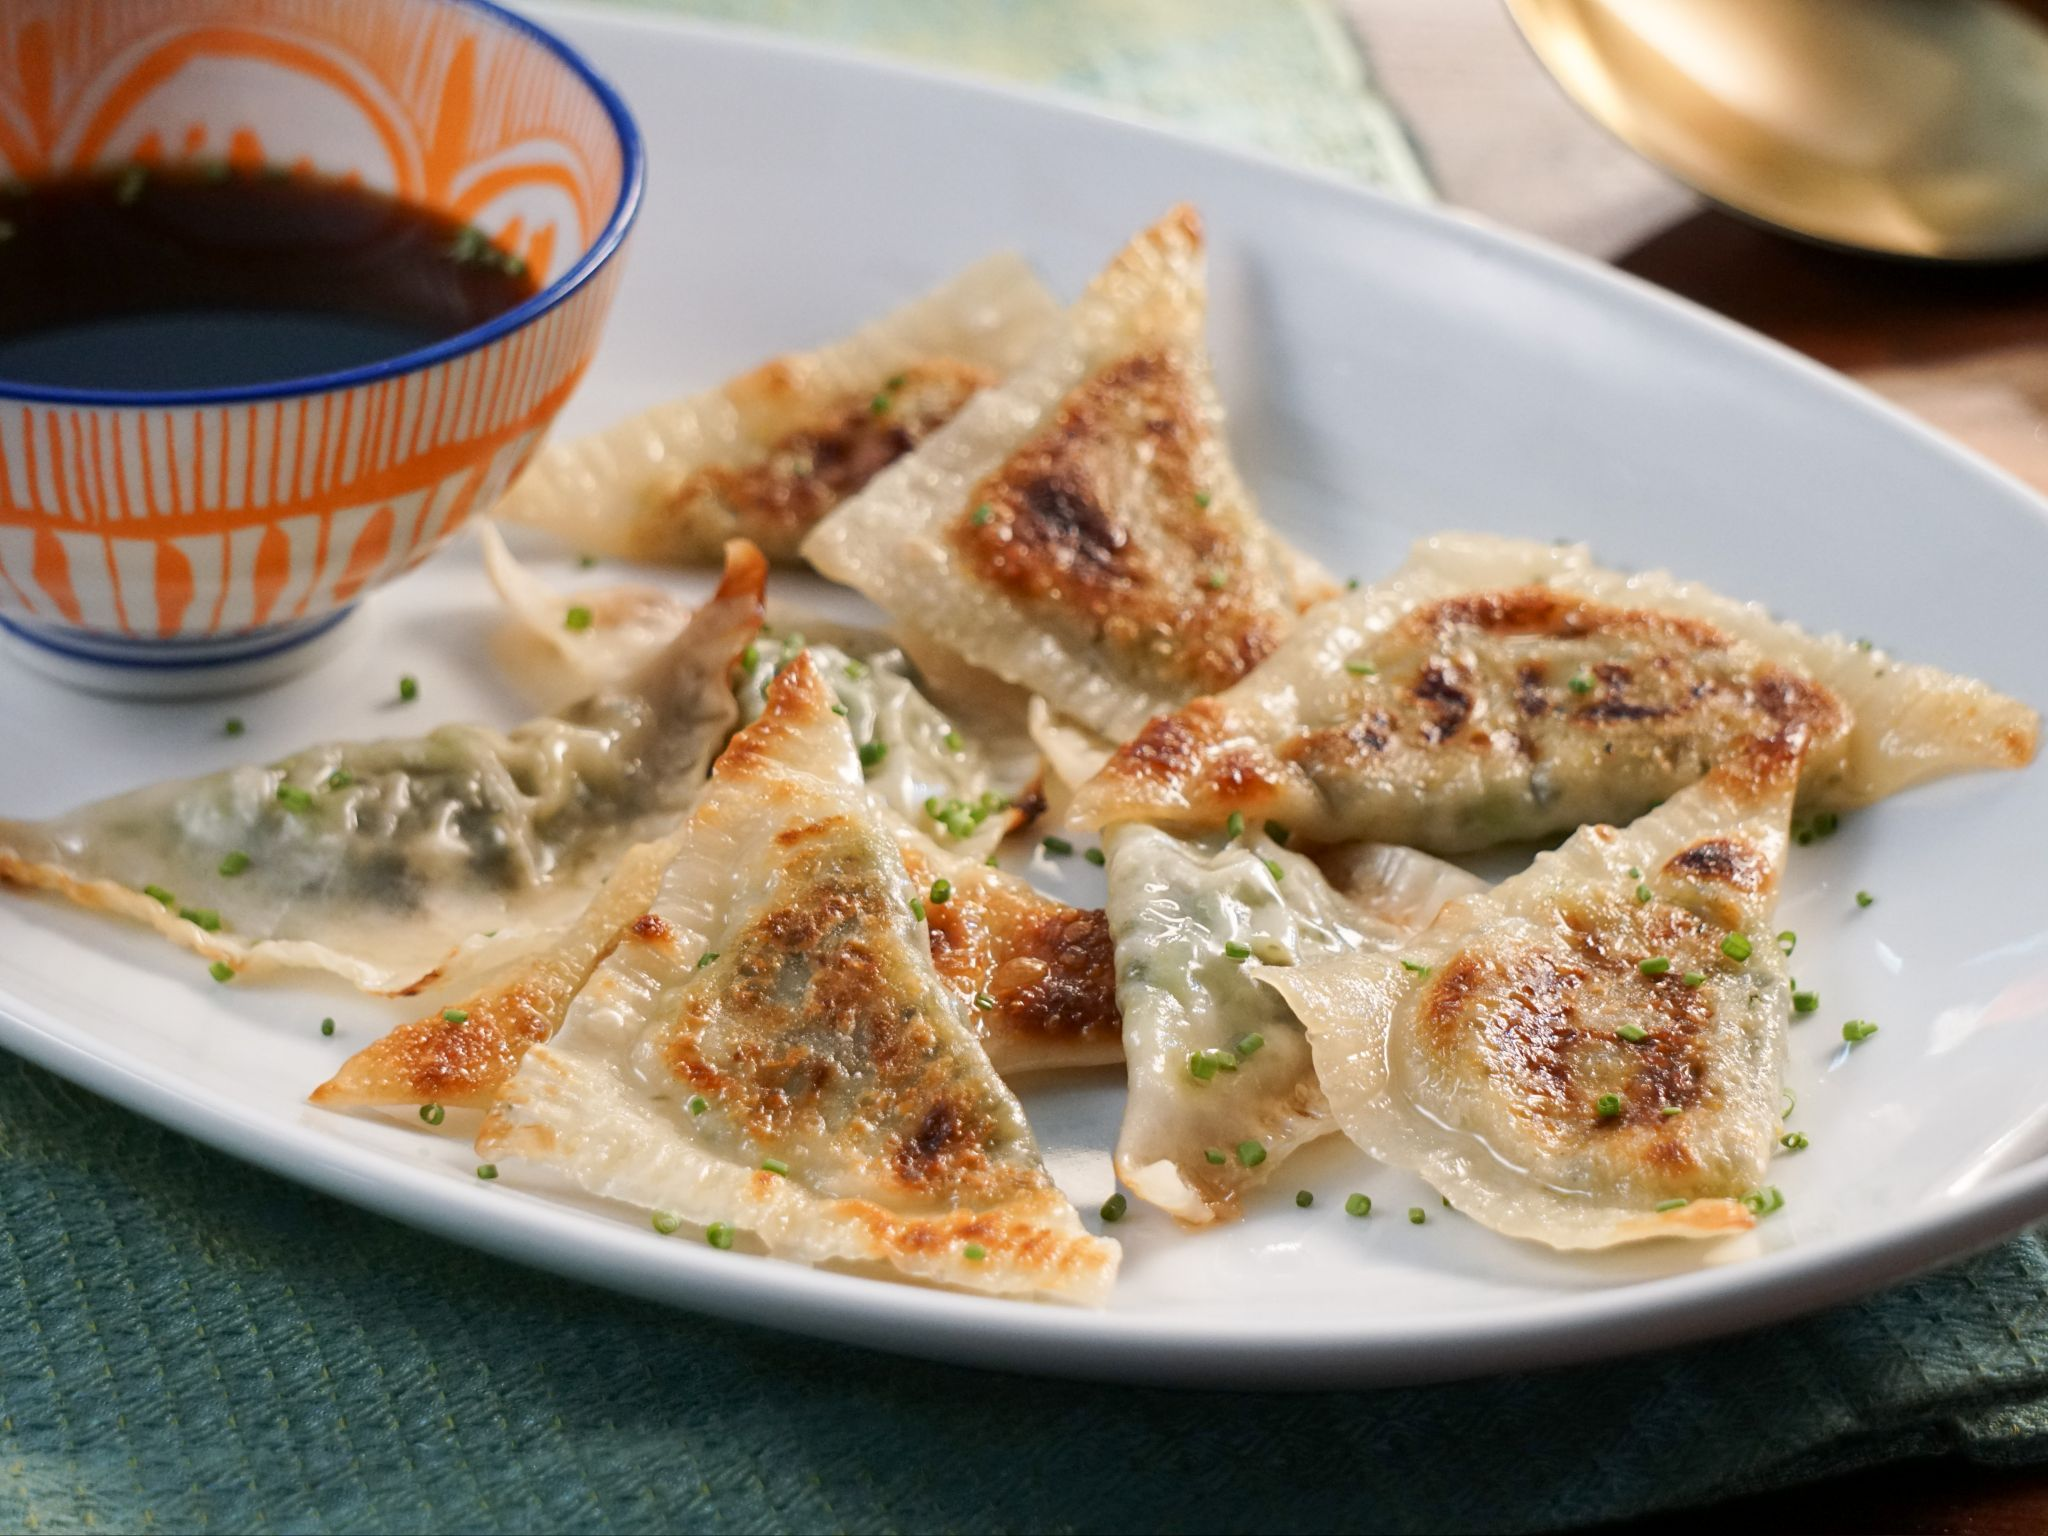 Vegetable potstickers recipe valerie bertinelli napa cabbage vegetable potstickers recipe valerie bertinelli napa cabbage and cilantro forumfinder Gallery